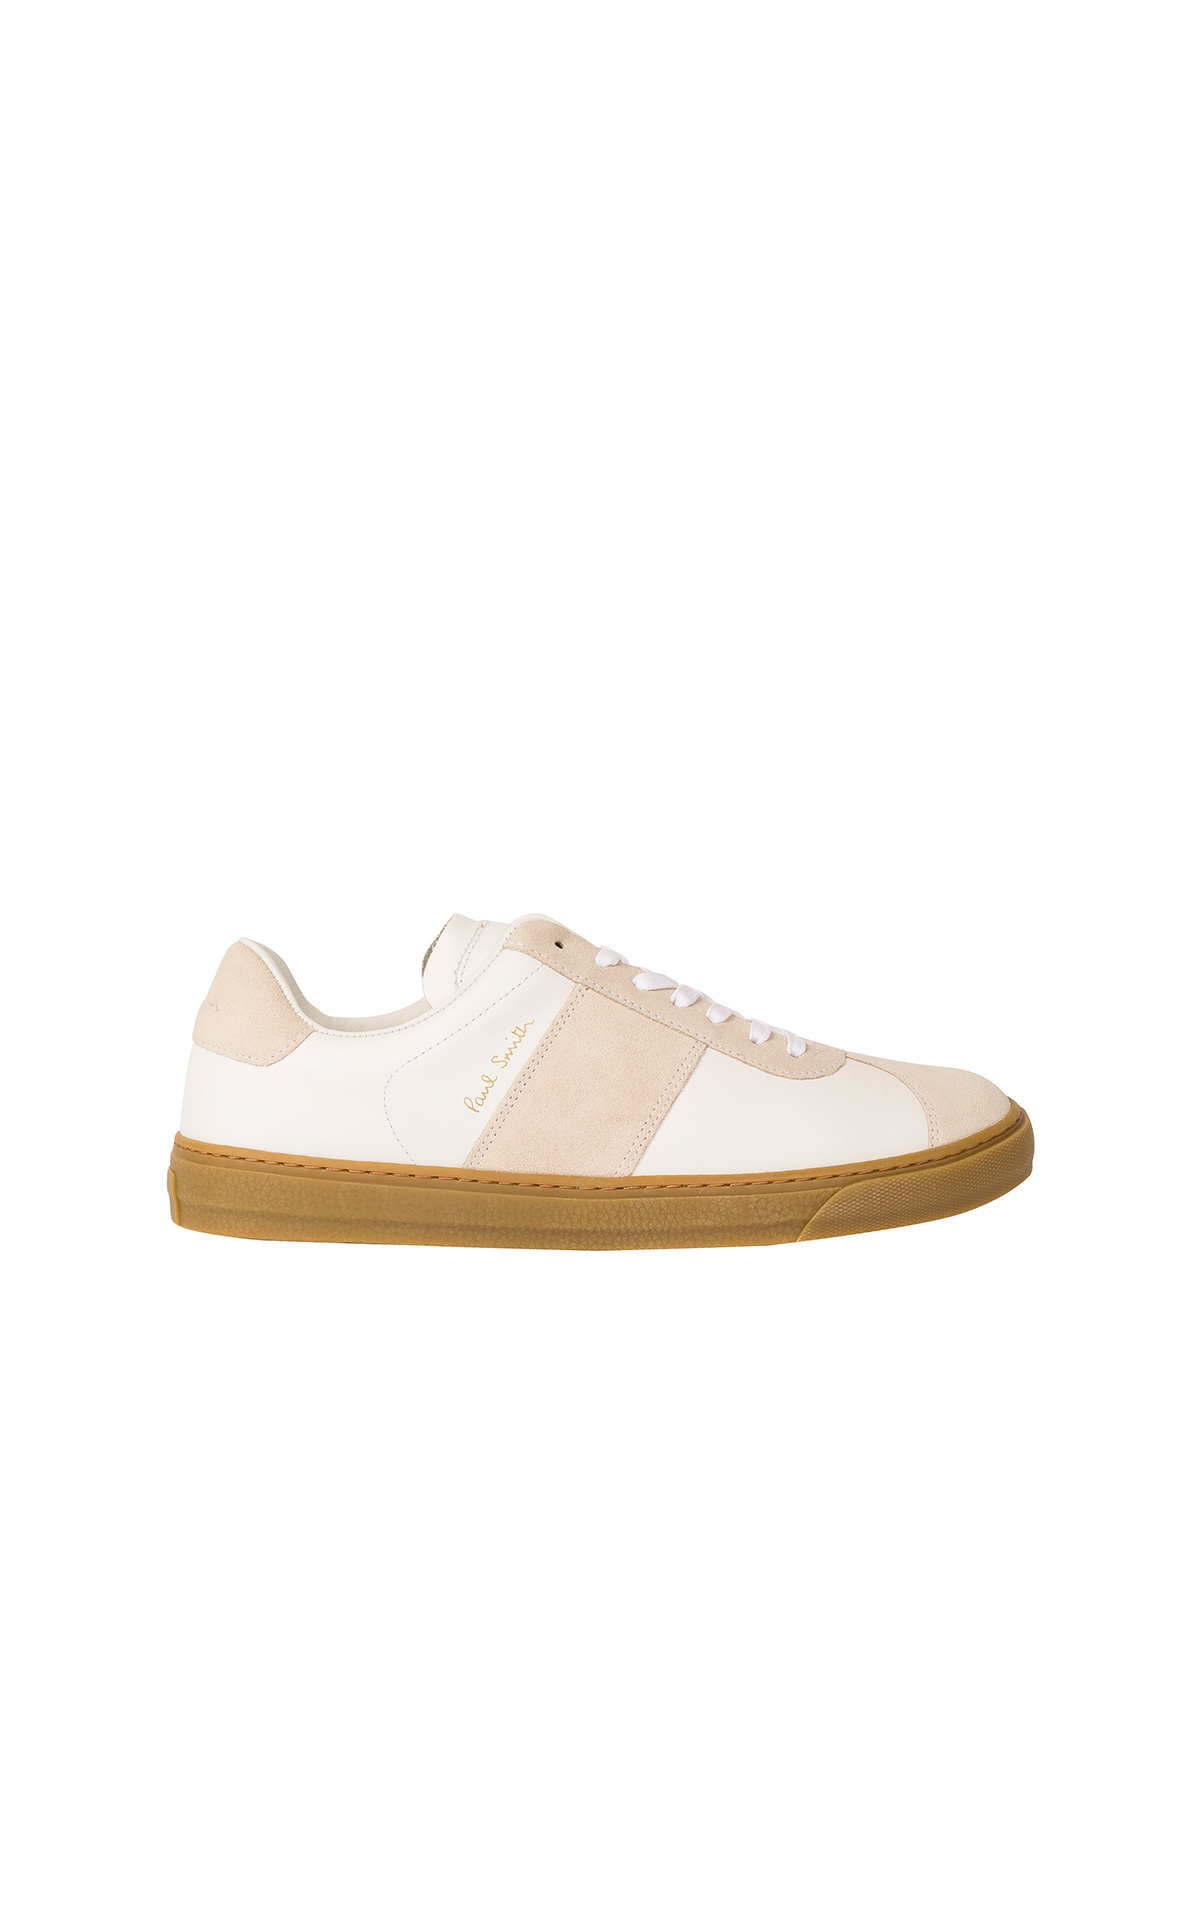 La Vallée Village Paul Smith white Levon sneakers